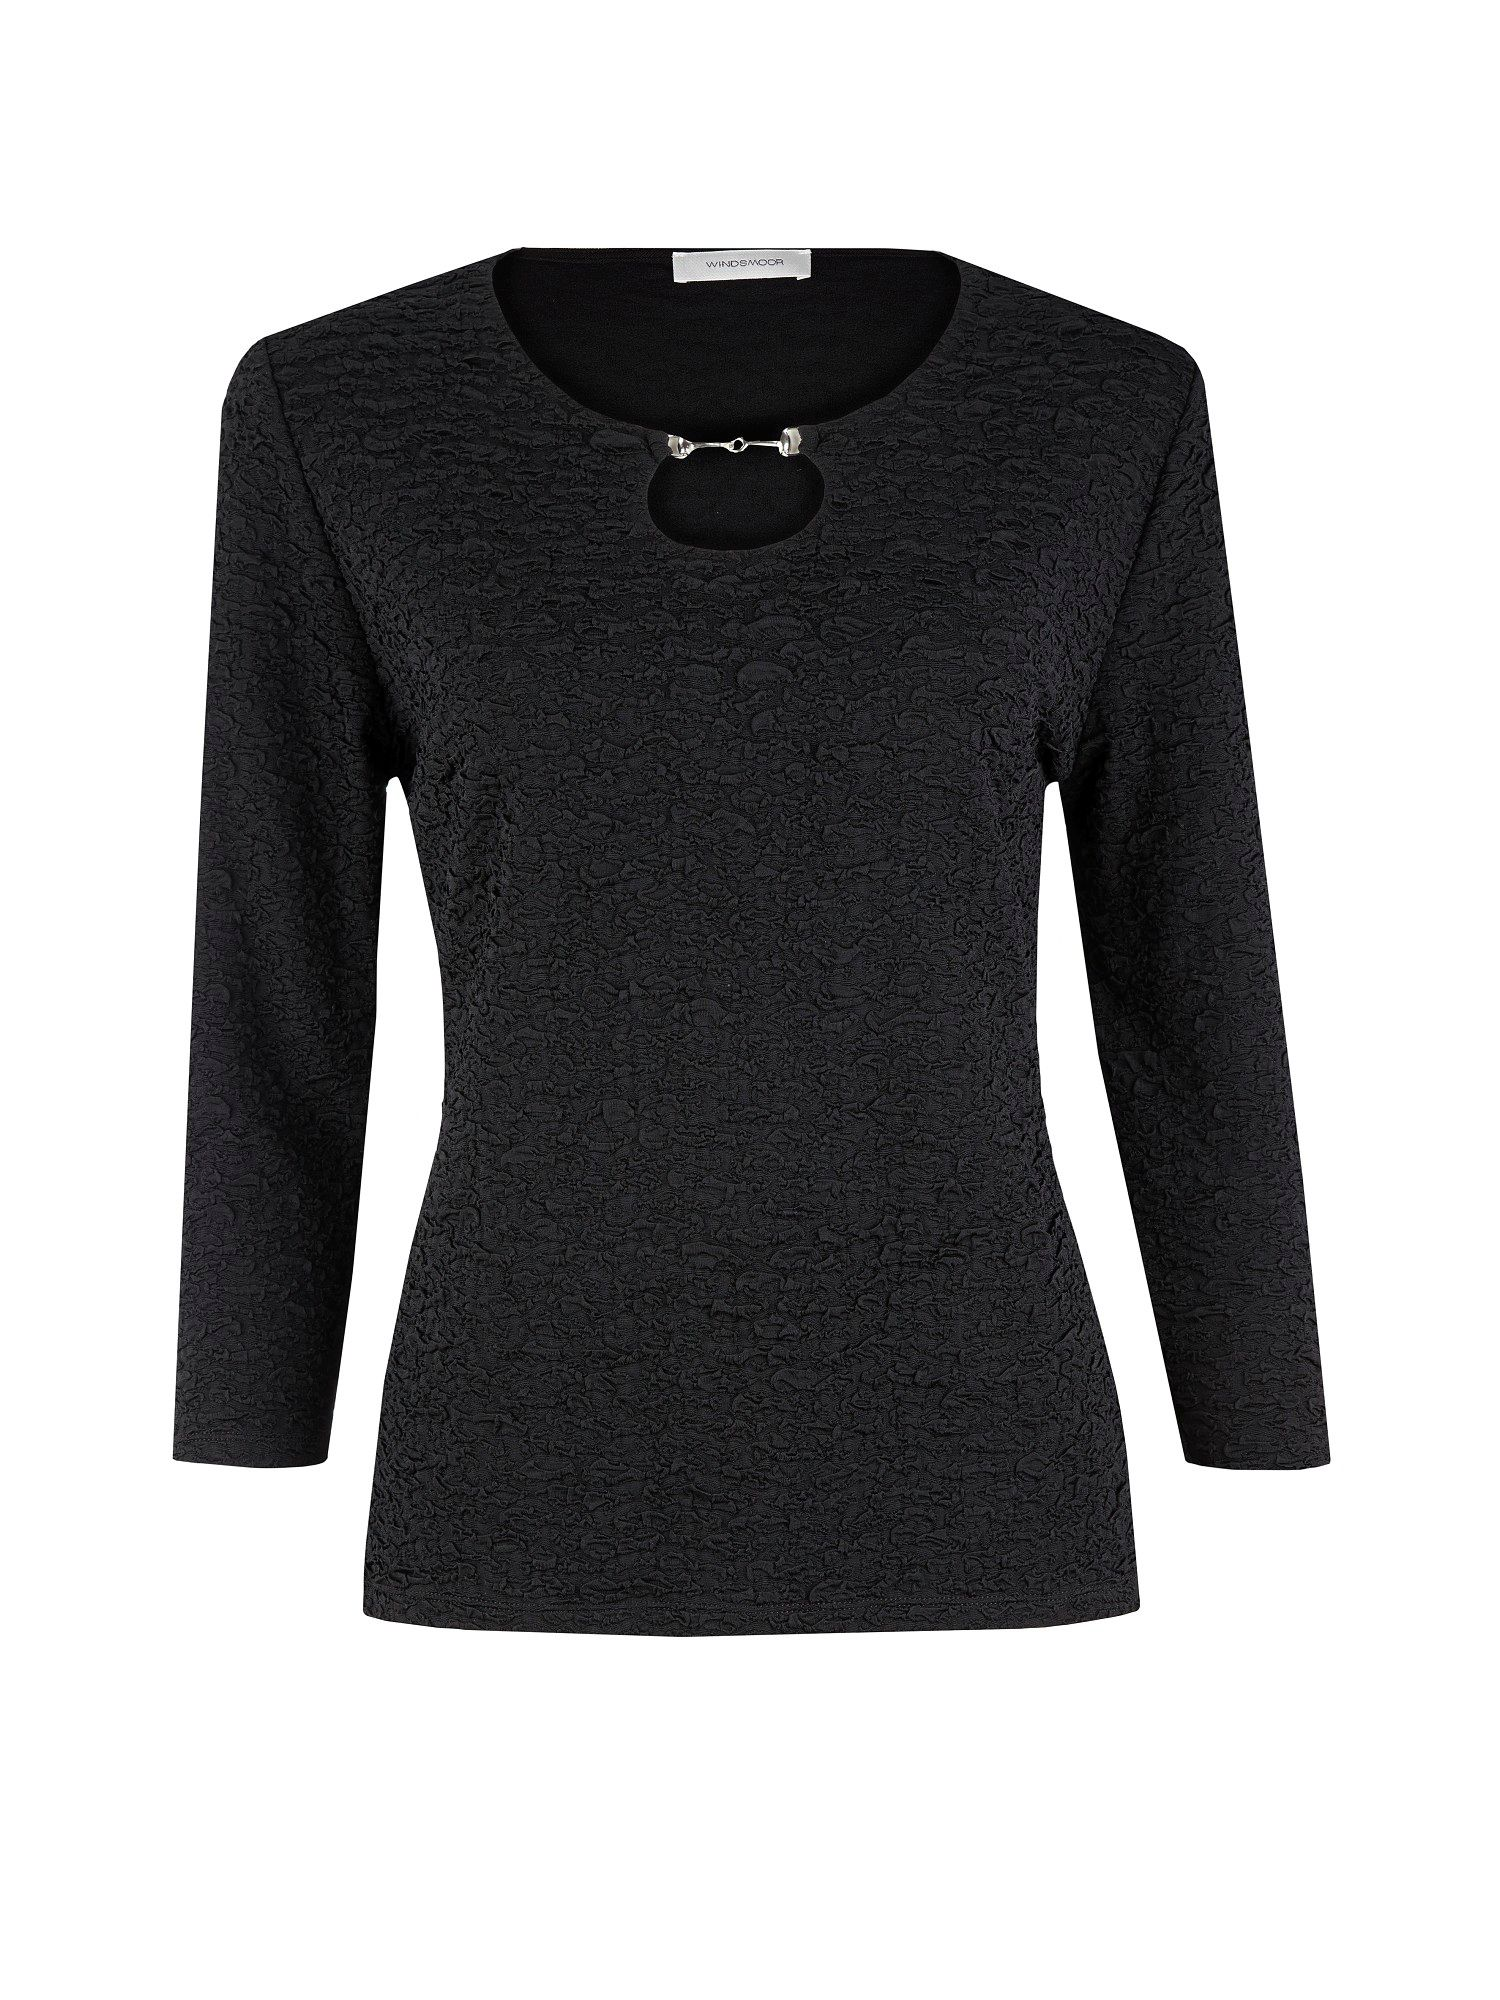 Black textured jersey top